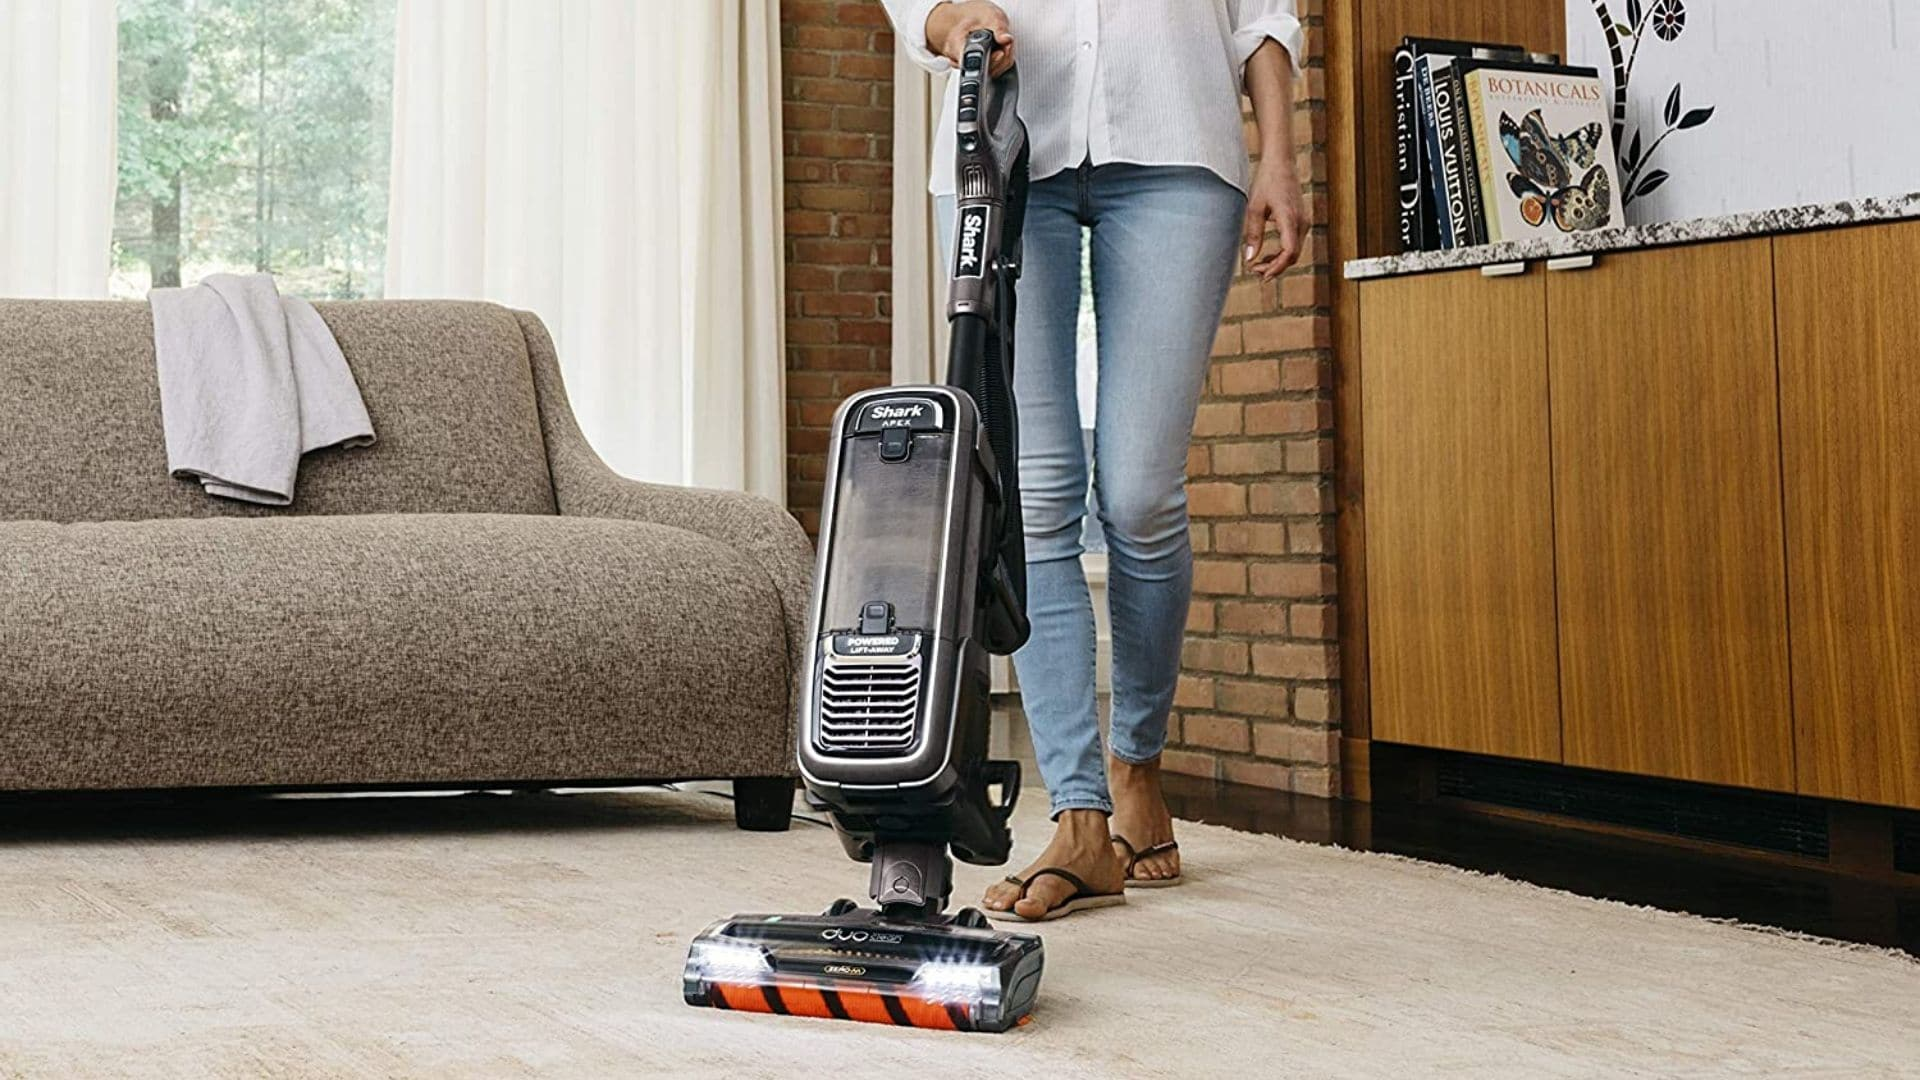 image of woman using Shark APEX Upright Vacuum with DuoClean for Carpet and HardFloor Cleaning, Zero-M Anti-Hair Wrap, & Powered Lift-Away with Hand Vacuum (AZ1002) to clean carpeted floor